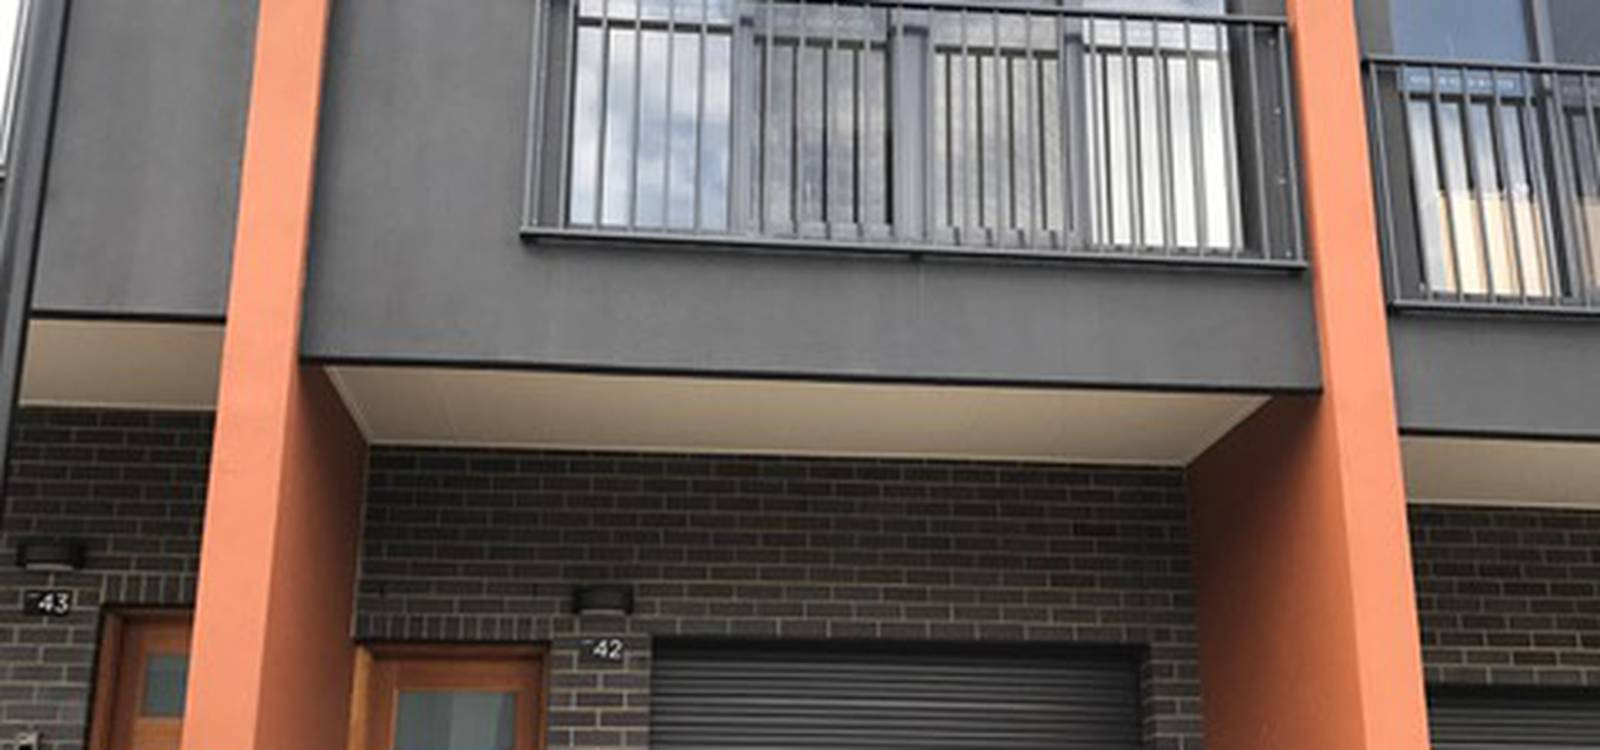 42/2 Rouseabout Street LAWSON, ACT 2617 - photo 1